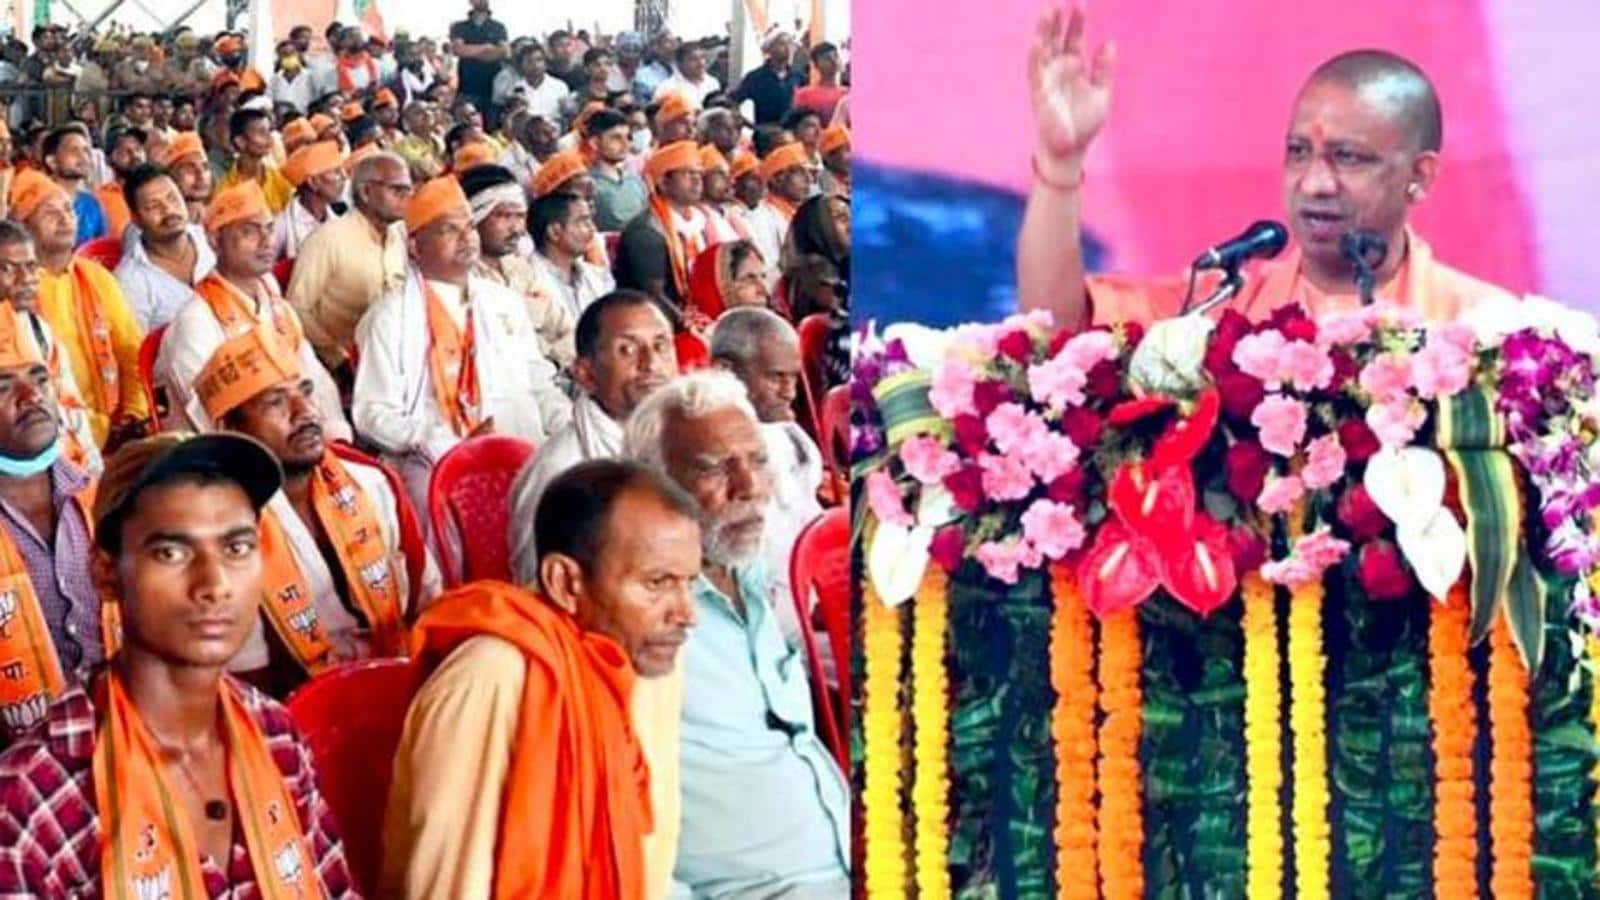 BJP govt wiping out mafias and goons protected earlier in UP: Yogi Adityanath